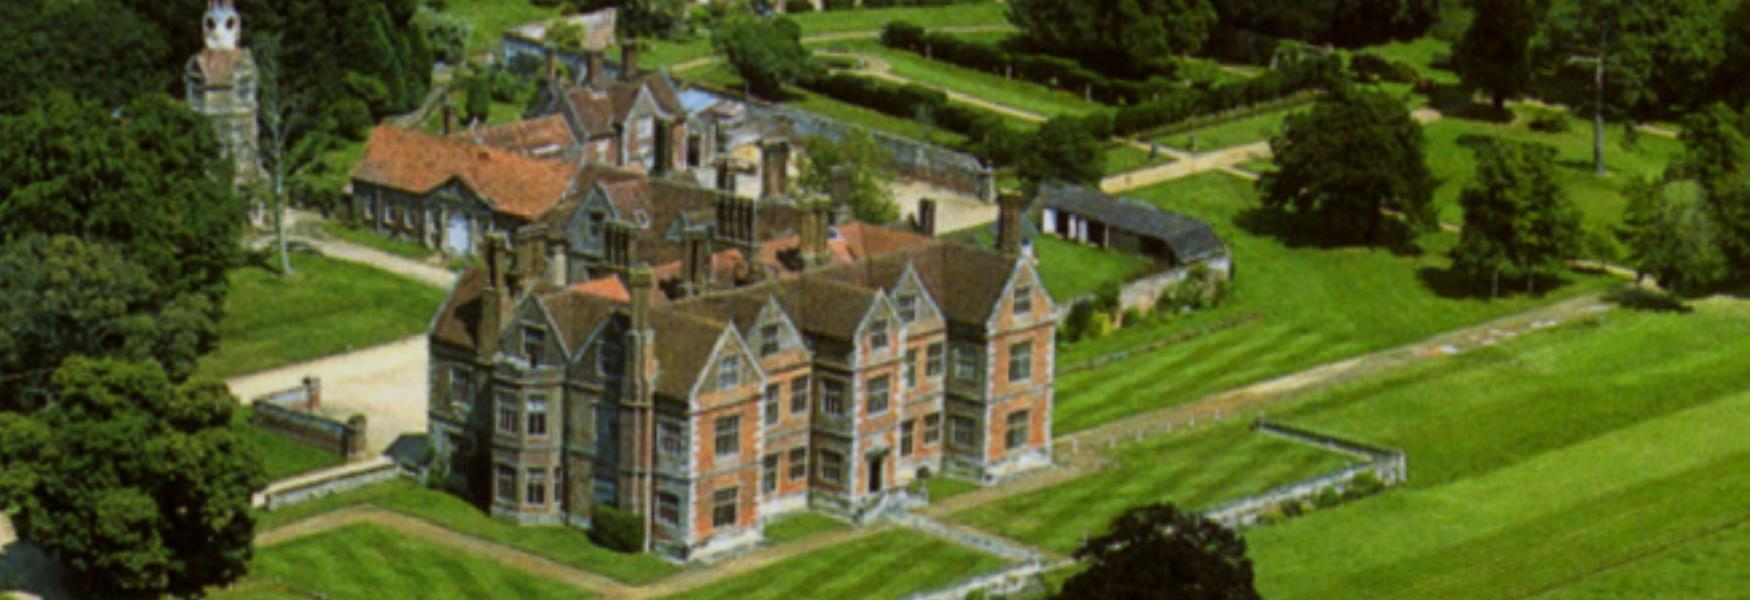 Birdseye view of Breamore House near Fordingbridge in the New Forest